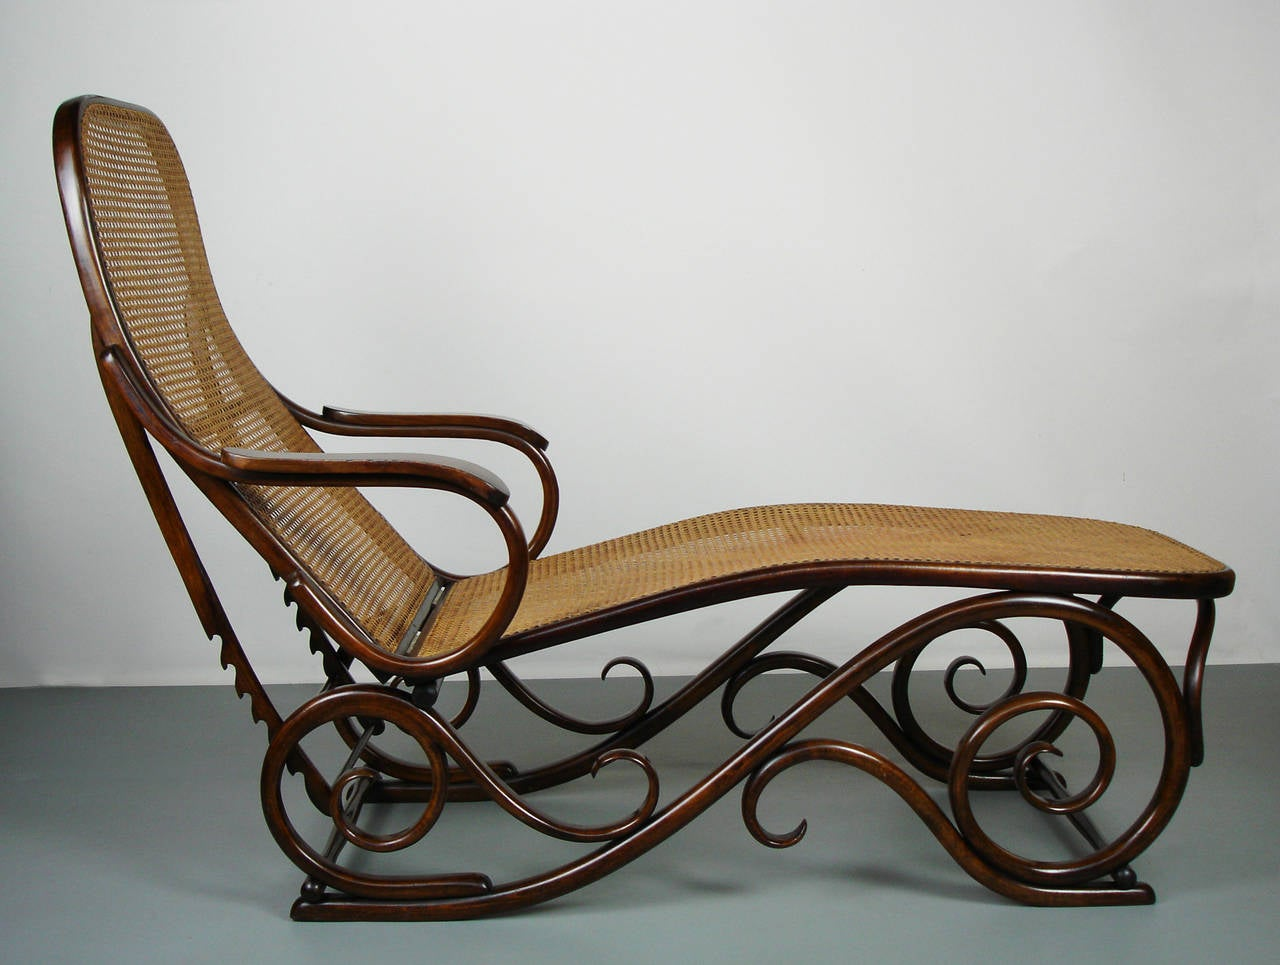 Bent wood chaise longue attributed to thonet at 1stdibs for Art nouveau chaise lounge